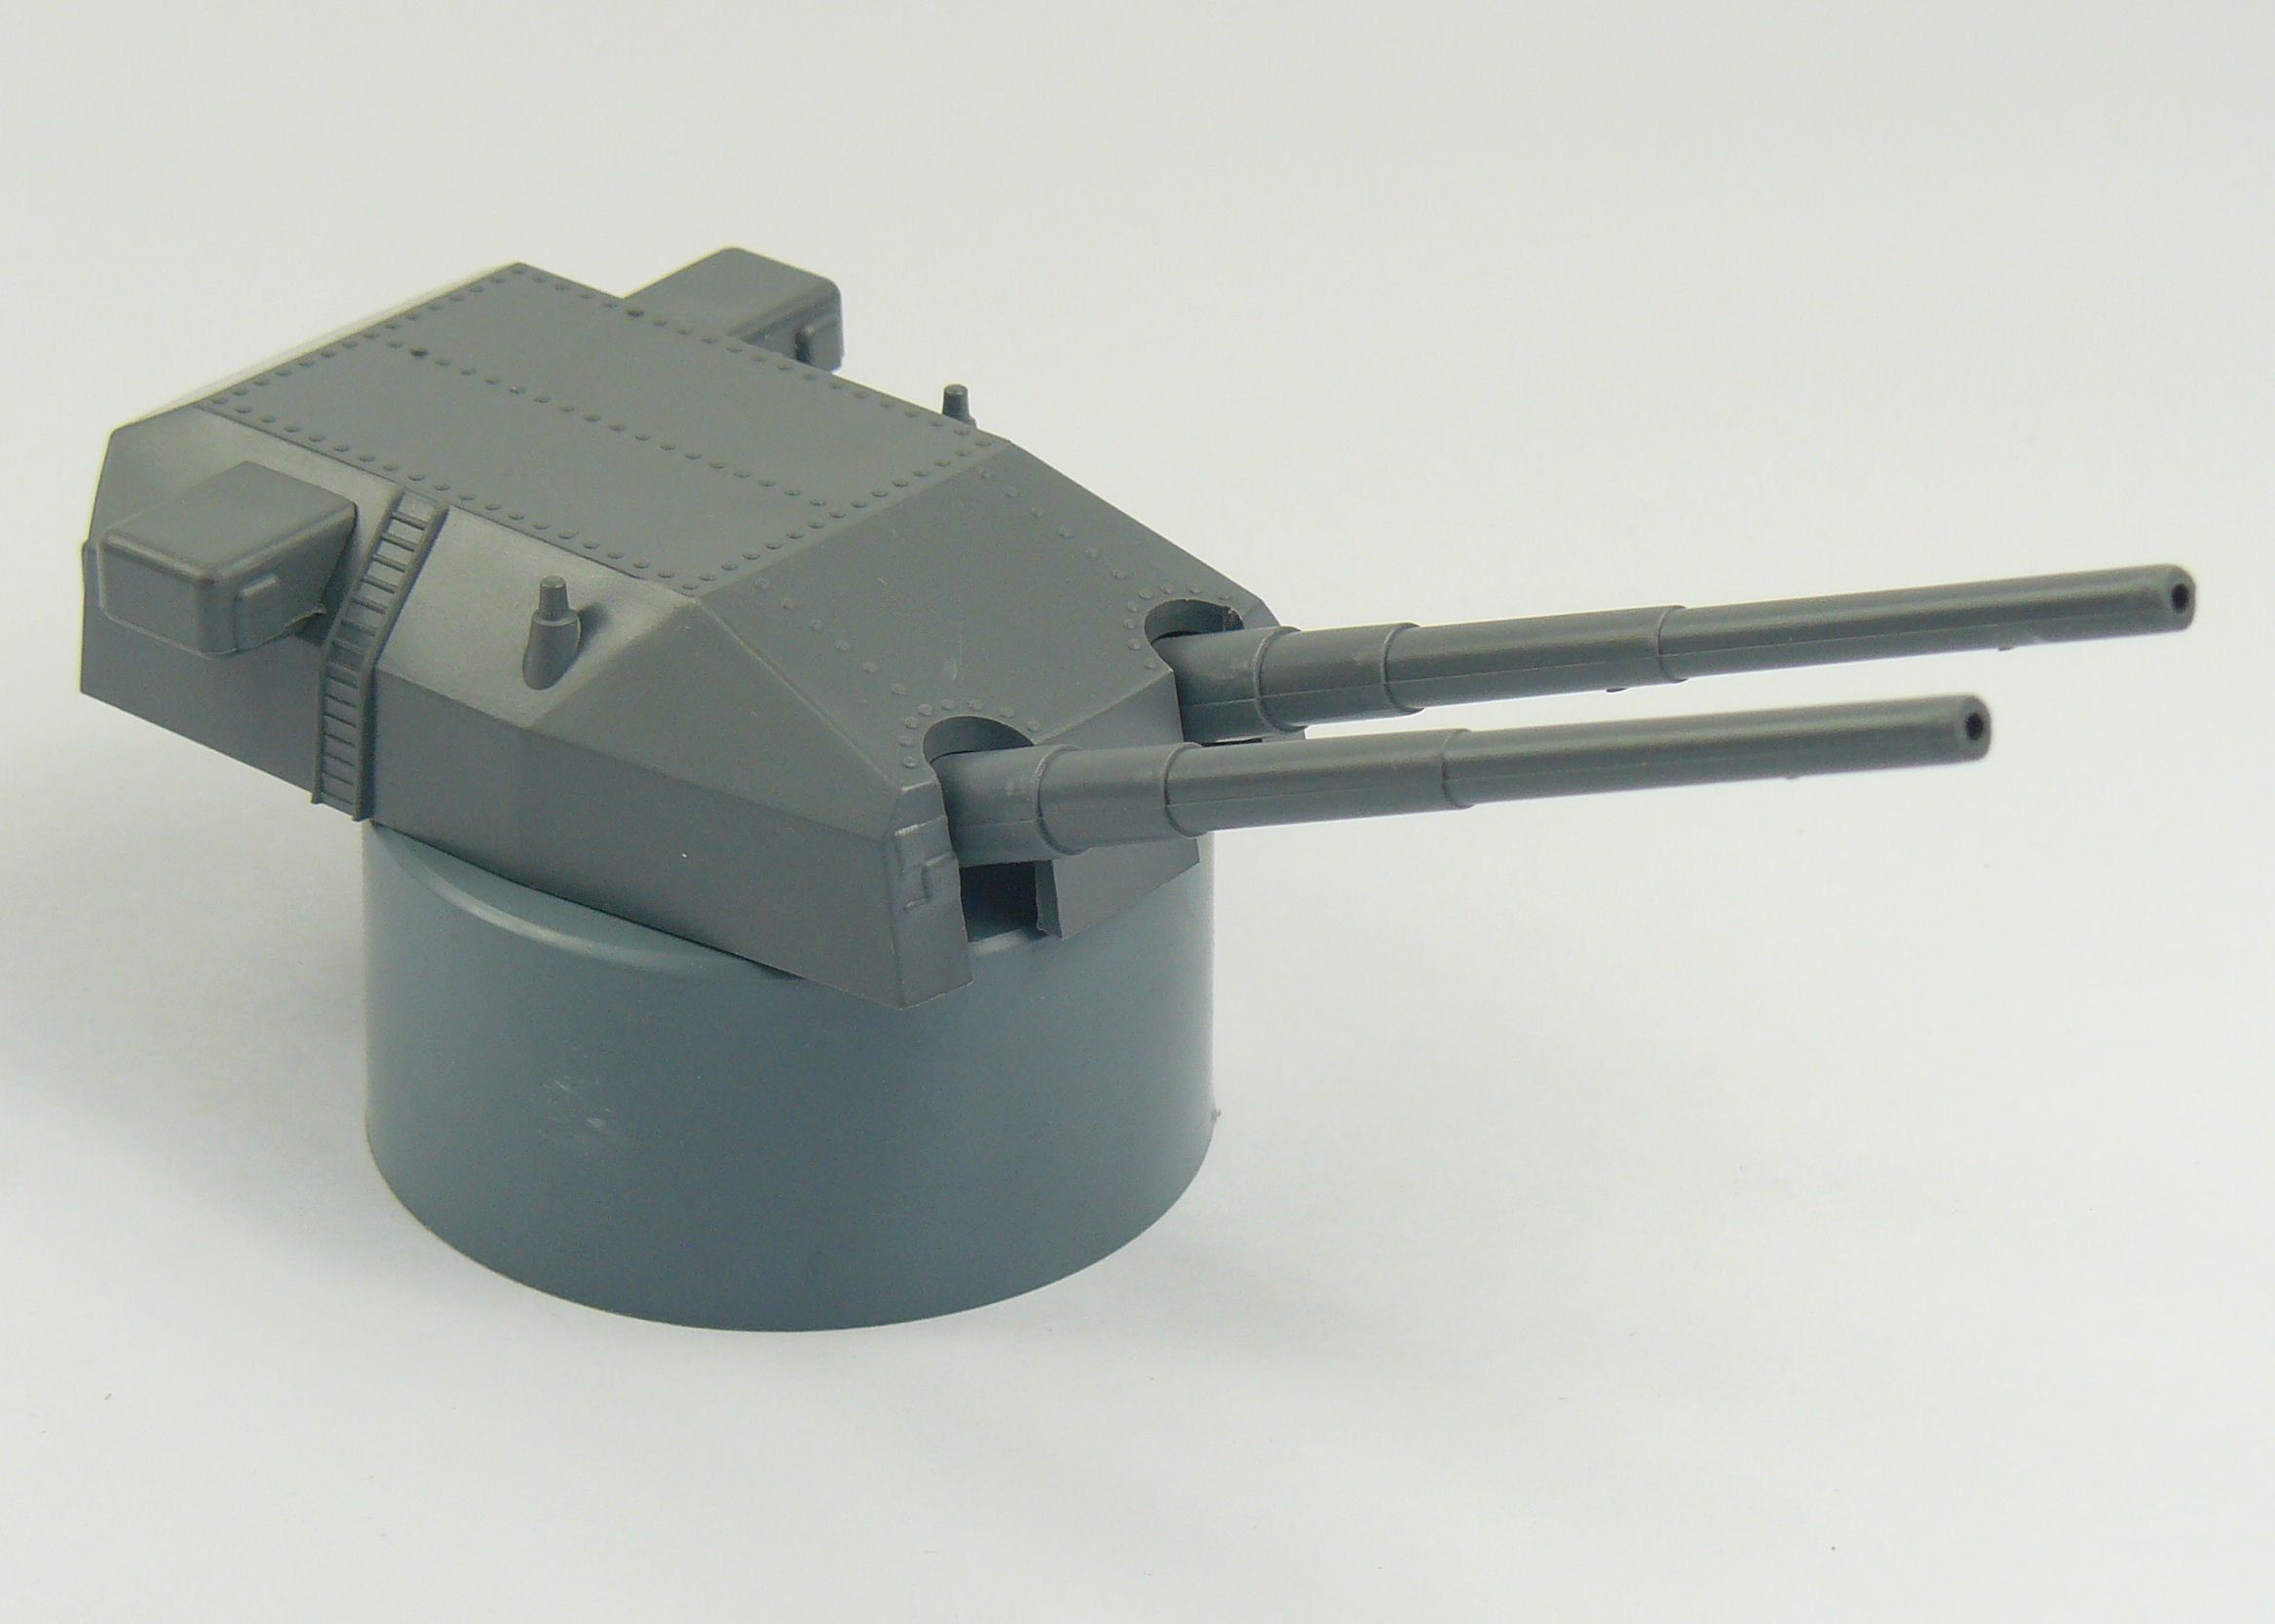 Double Mount Raised Turret Gun 380mm High Base for Scale Model Ship Kits